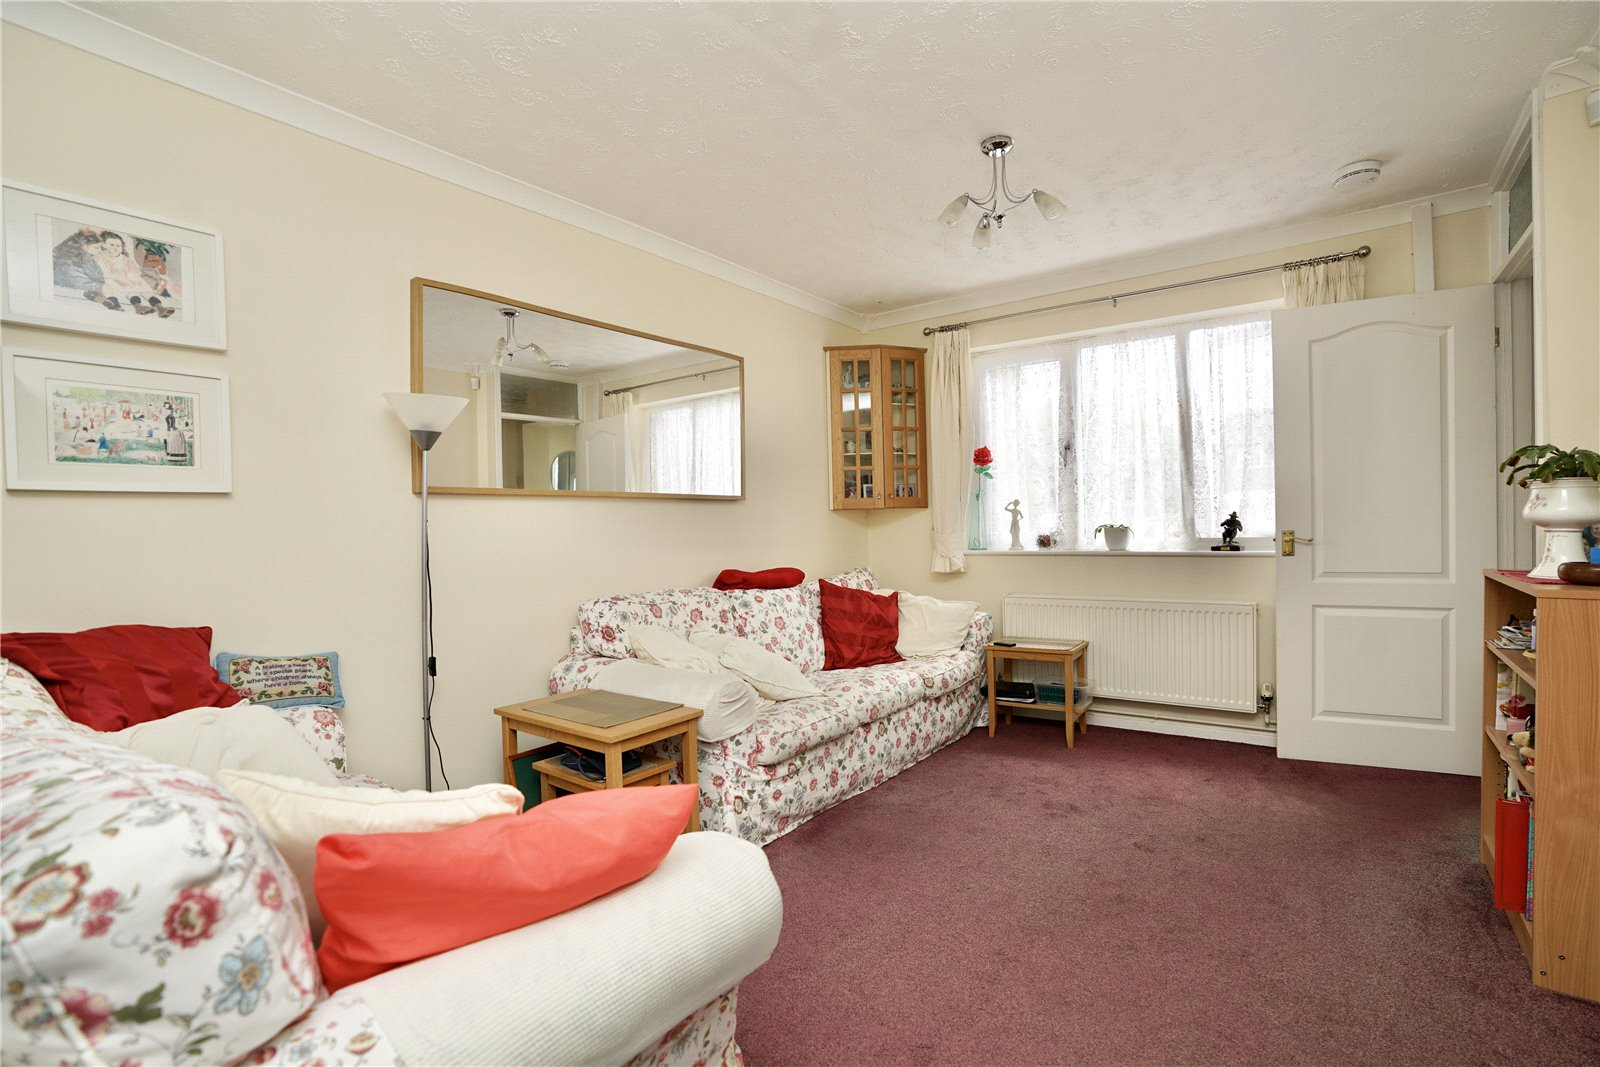 3 bed house for sale in Cunningham Way, Eaton Socon  - Property Image 11